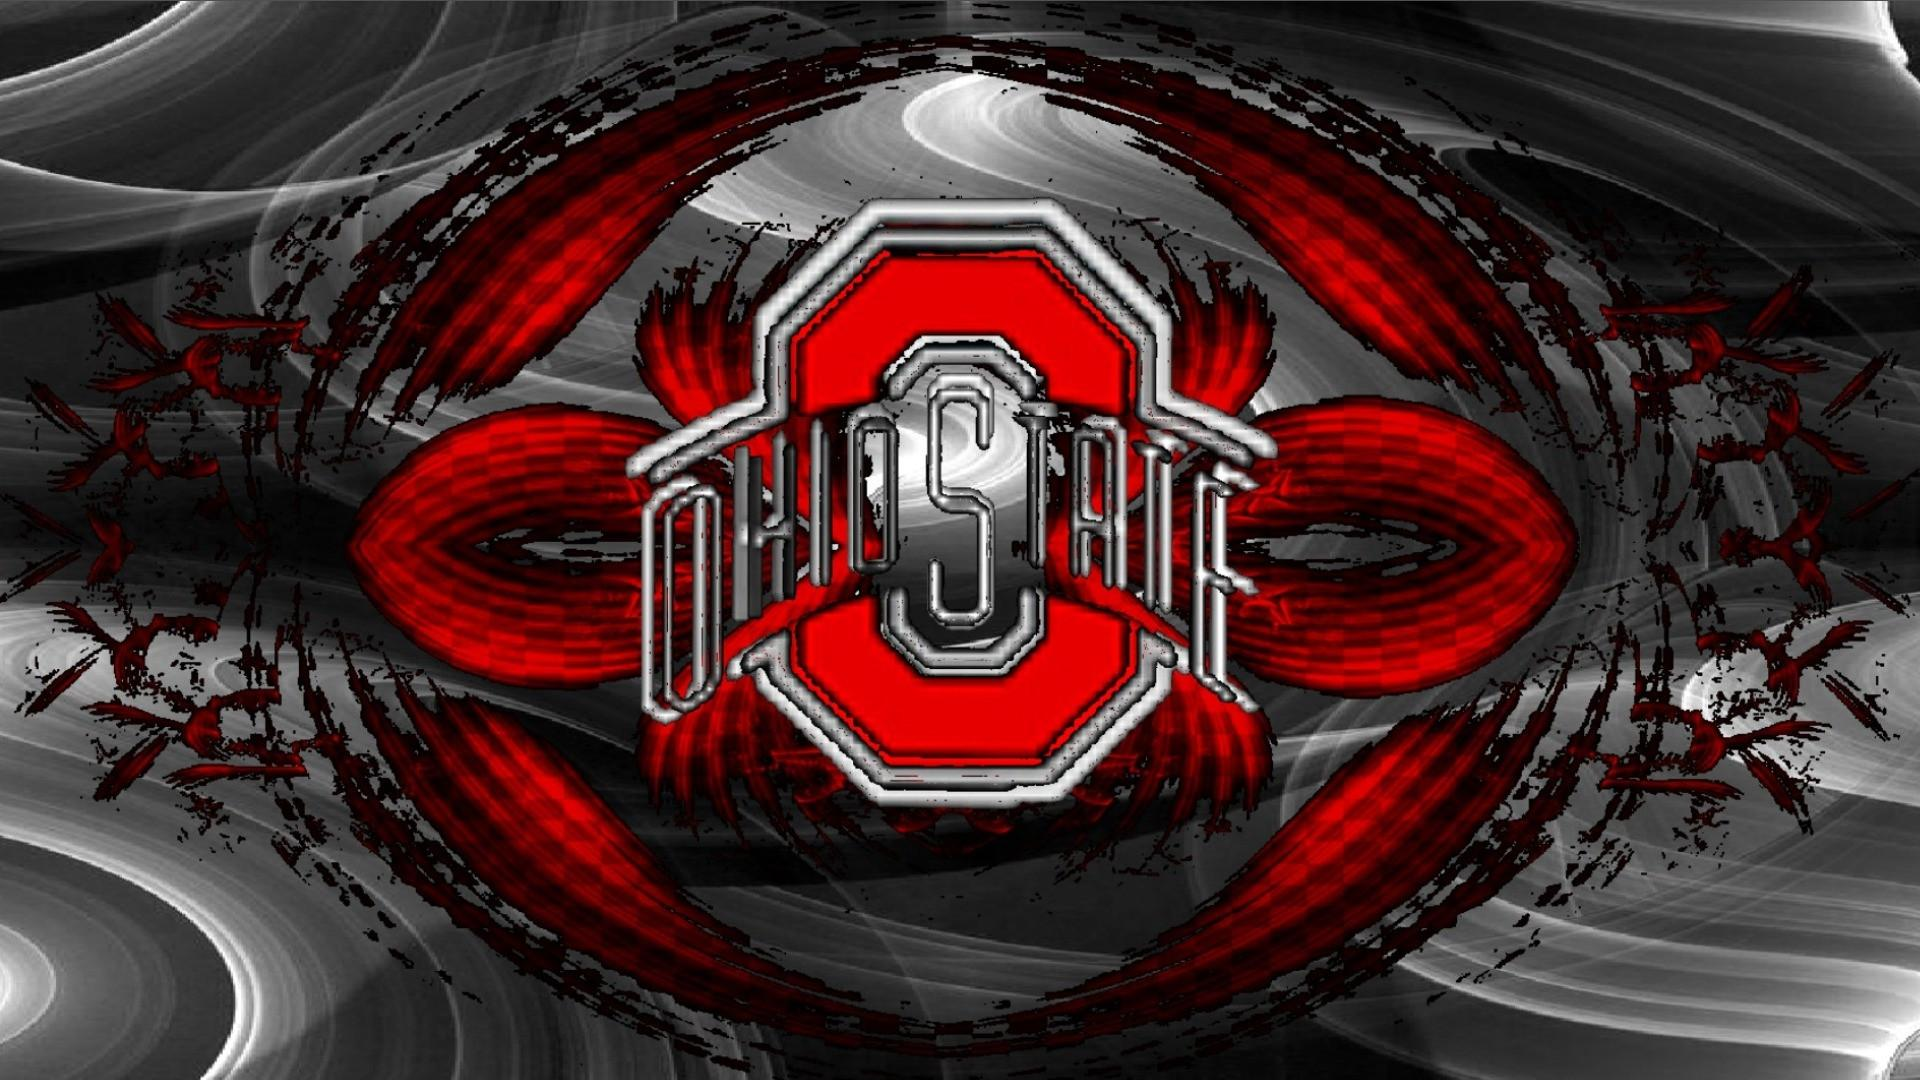 Ohio State Buckeyes Football Wallpapers Ohio State Buckeyes